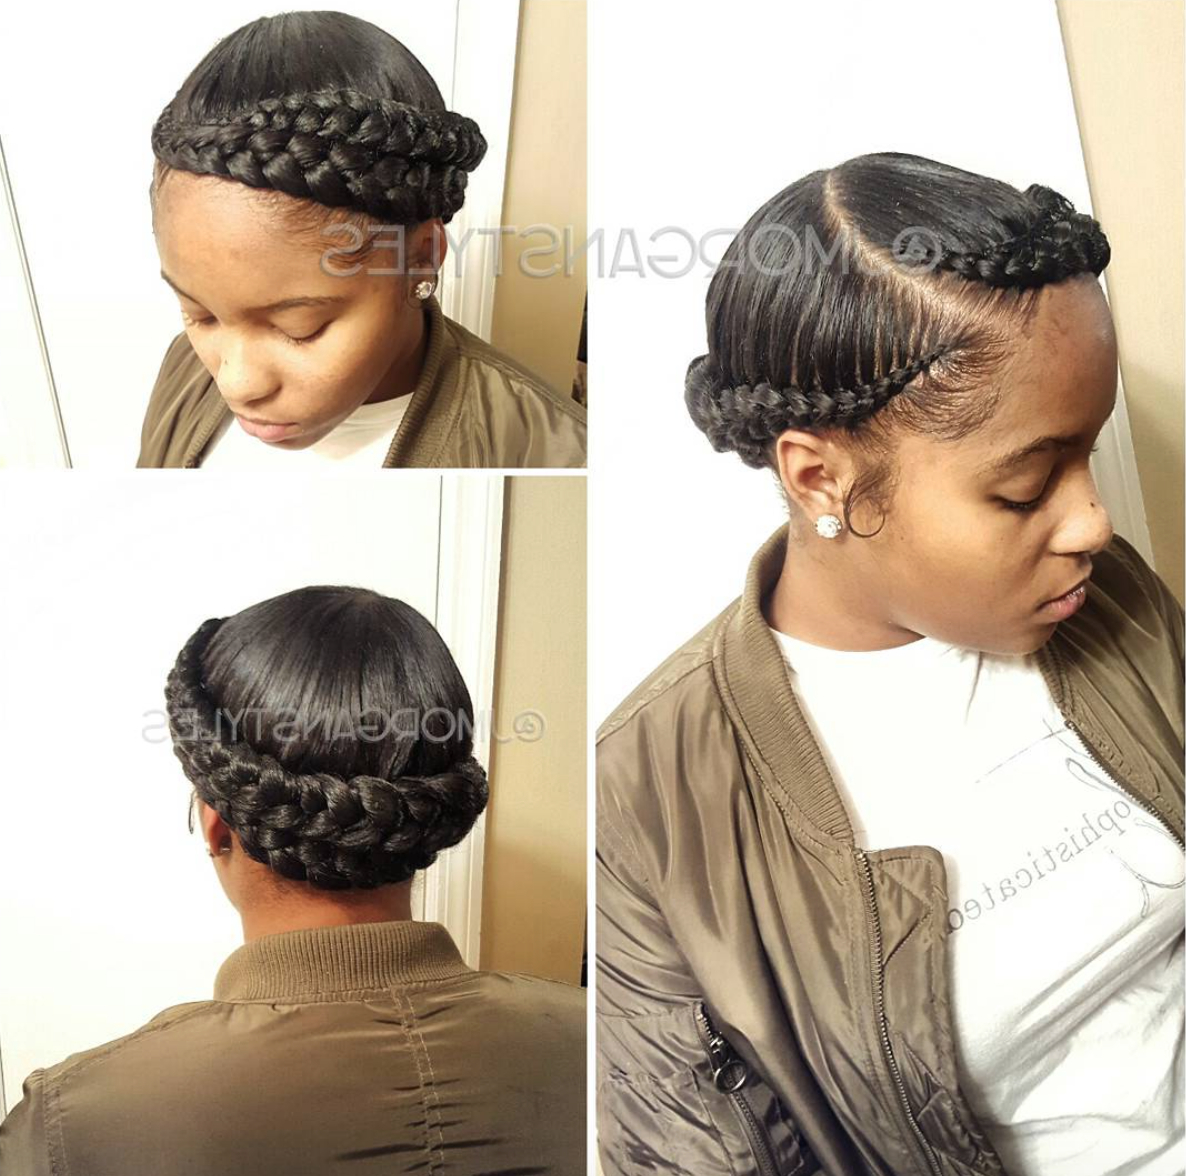 Natural Hair Styles With Most Recent Halo Braided Hairstyles With Bangs (View 17 of 20)